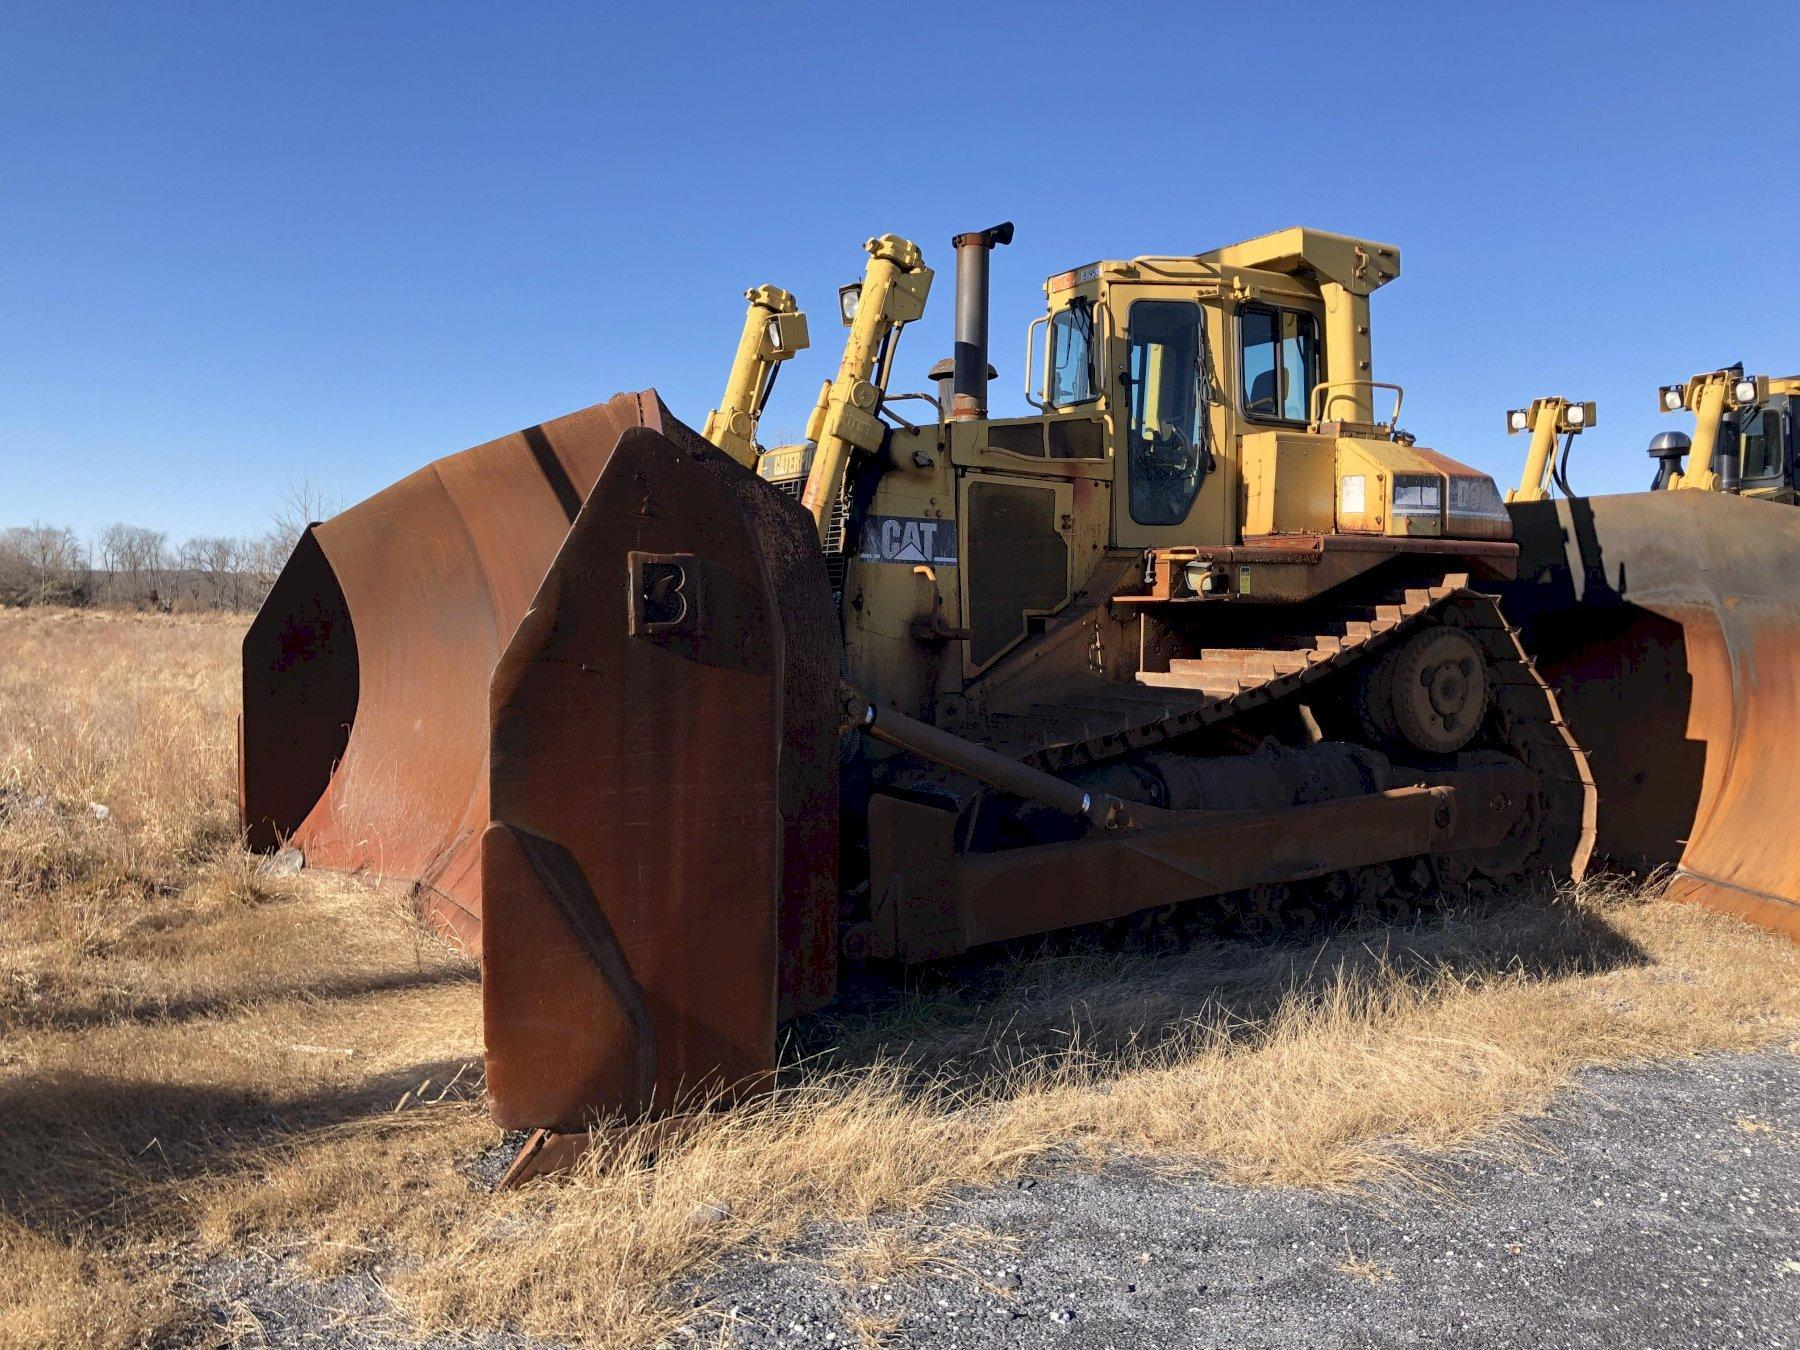 Caterpillar model d9n track mounted bulldozer s/n 6xj00639 with balderson 3wl model bd9u19 blade s/n 15470, 3408 engine s/n 48w36550, 14846 hours